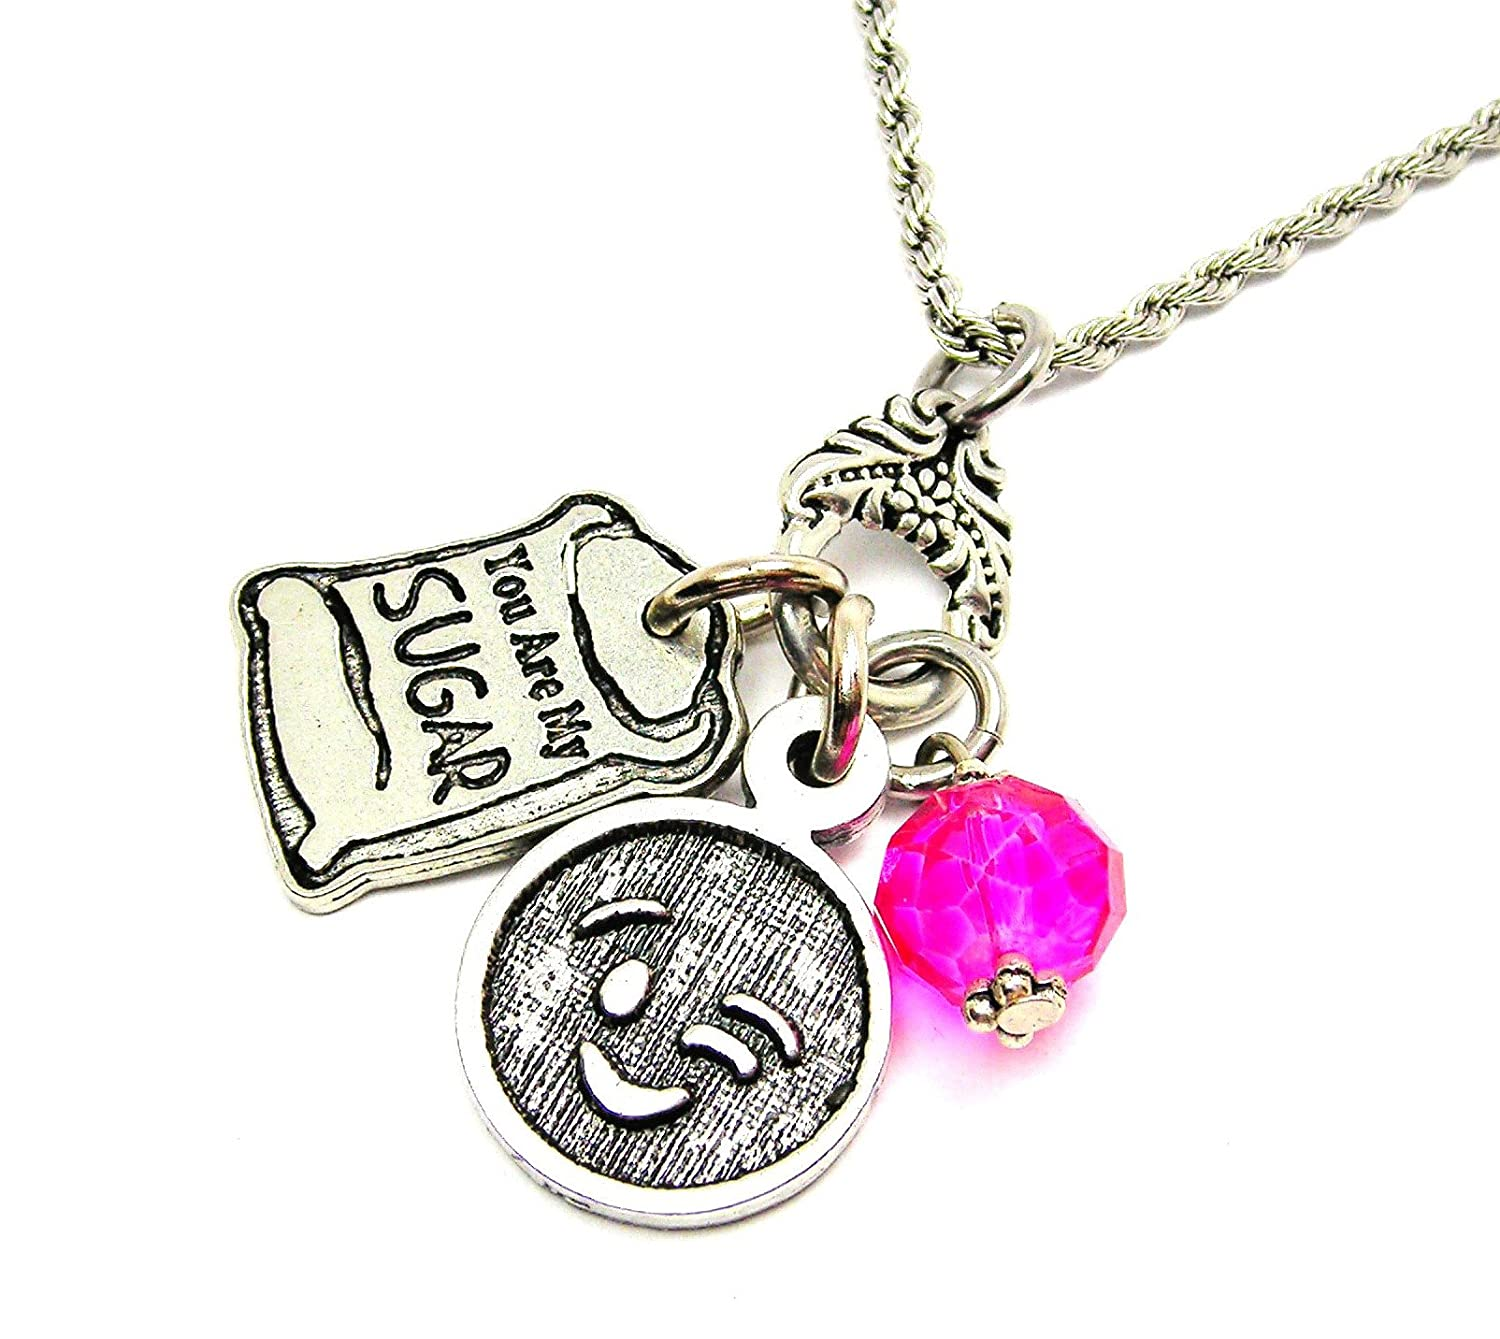 Chubby Chico Charms Exclusive You Are My Sugar 20 Stainless Steel Rope Chain in Hot Pink